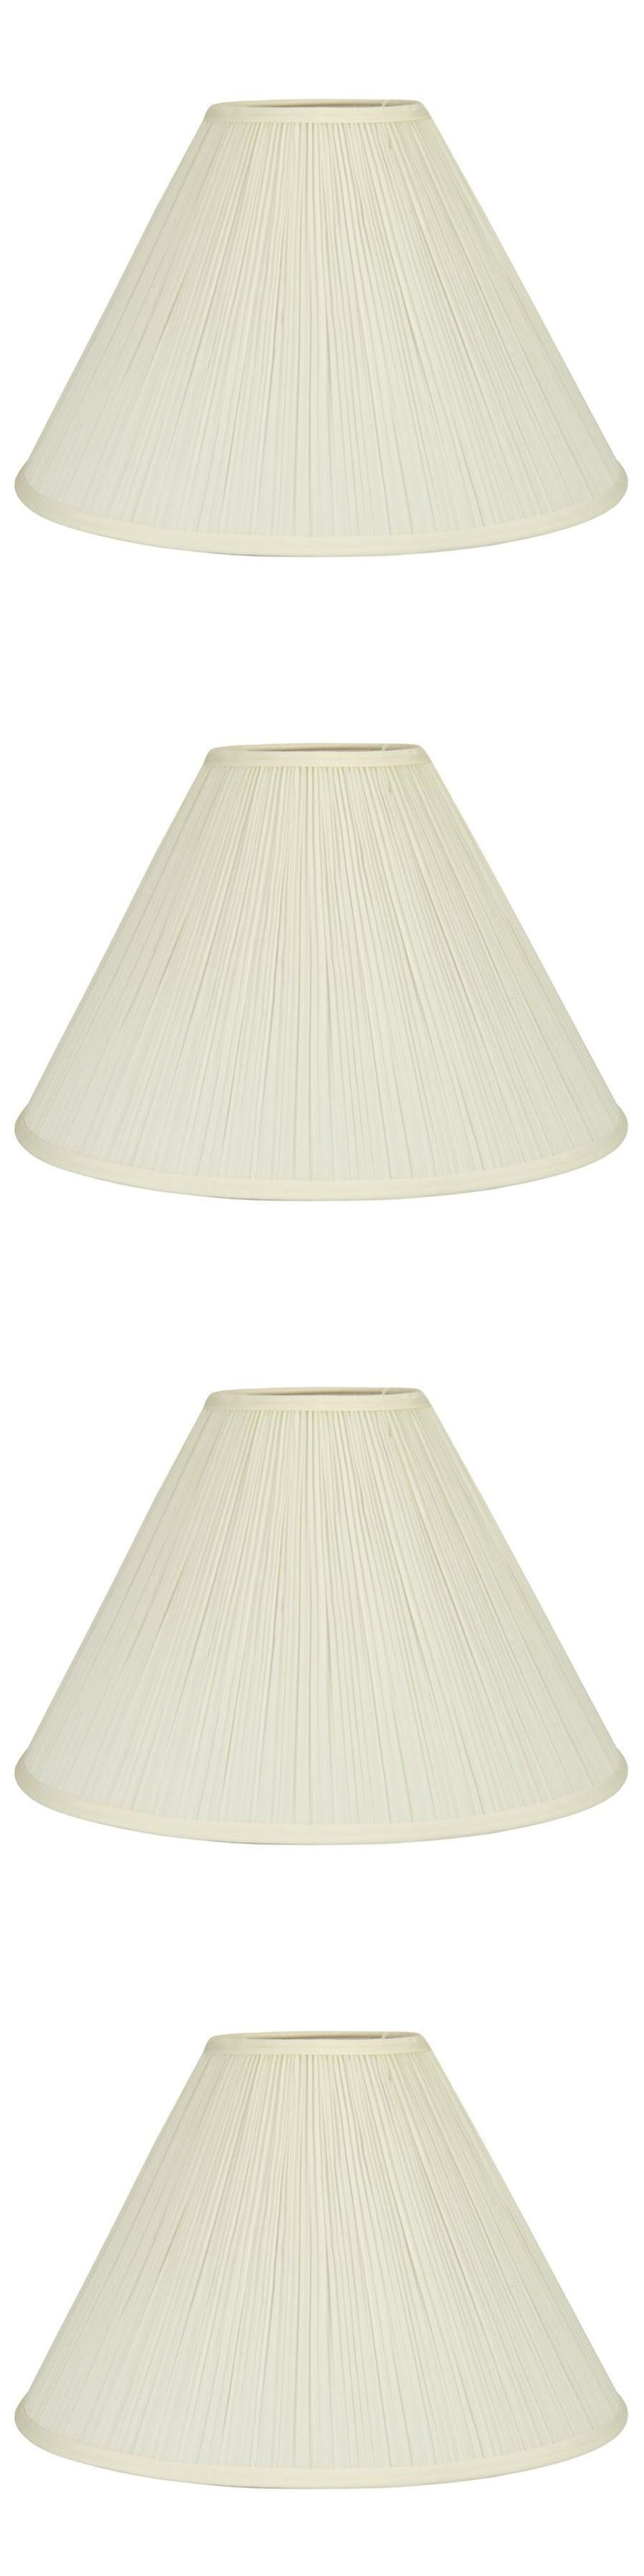 Lamp Shades 20708 Allen Roth Standard Extra Large Cream Fabric